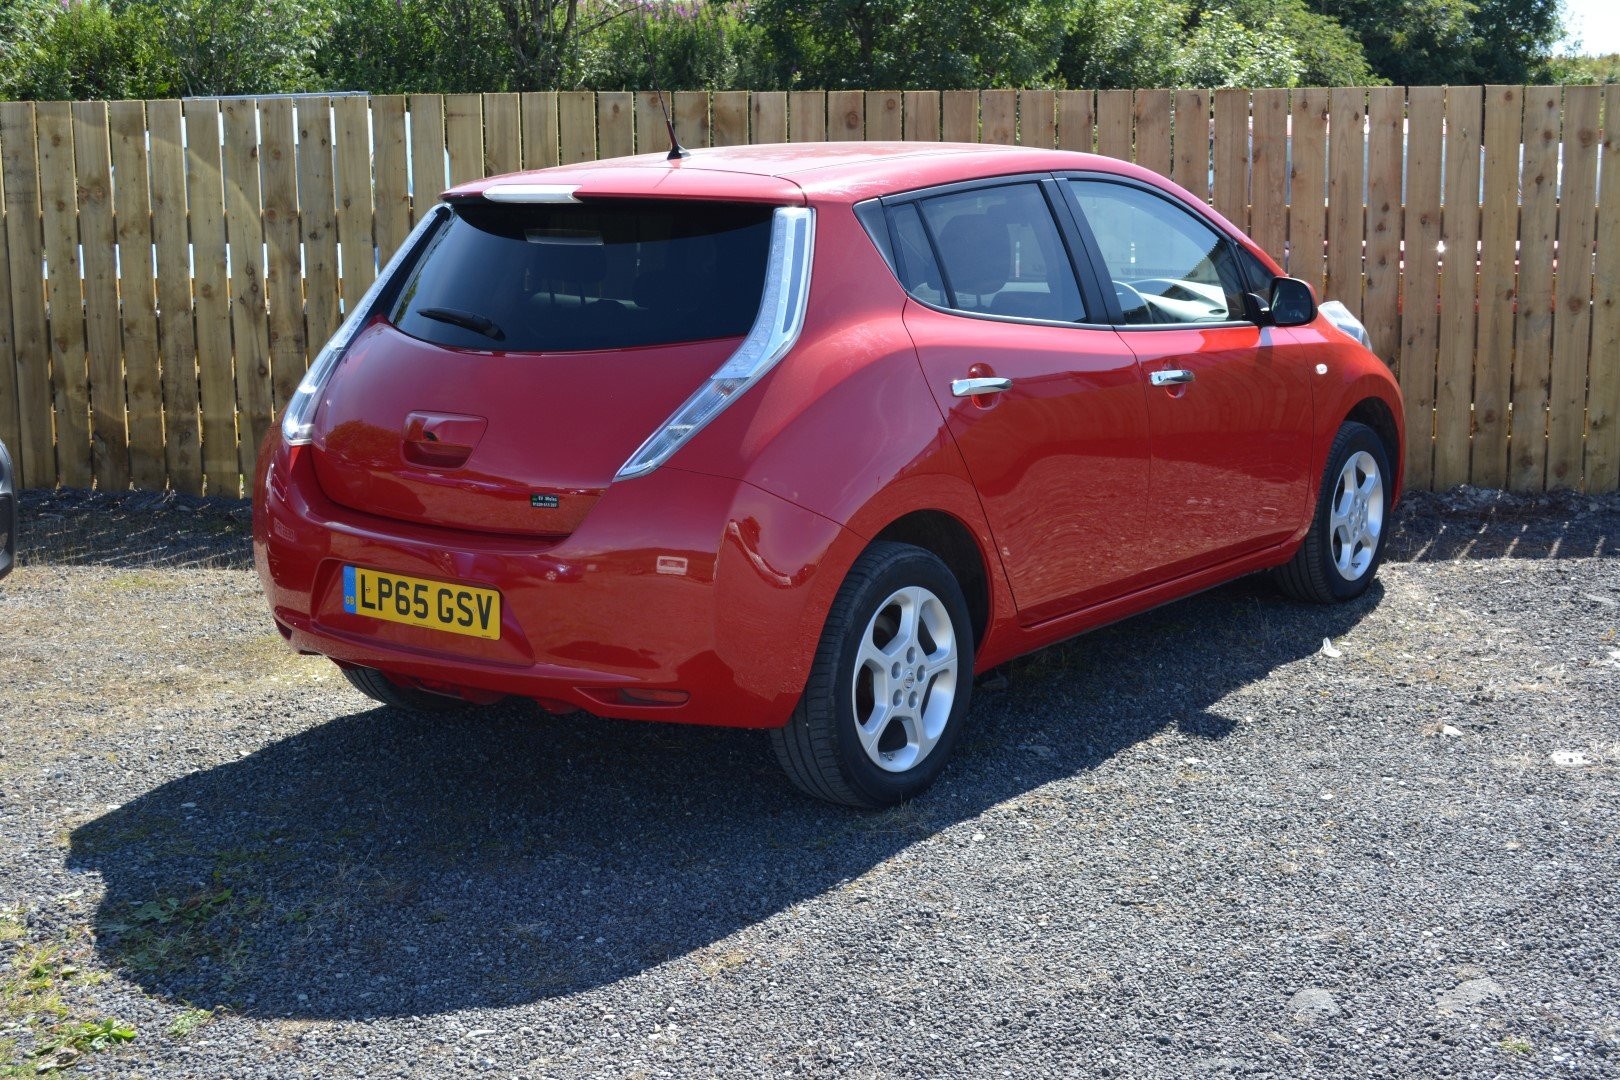 2016 2015 Nissan Leaf 24kwh Acenta 6.6kw Charger For Sale (picture 2 of 6)